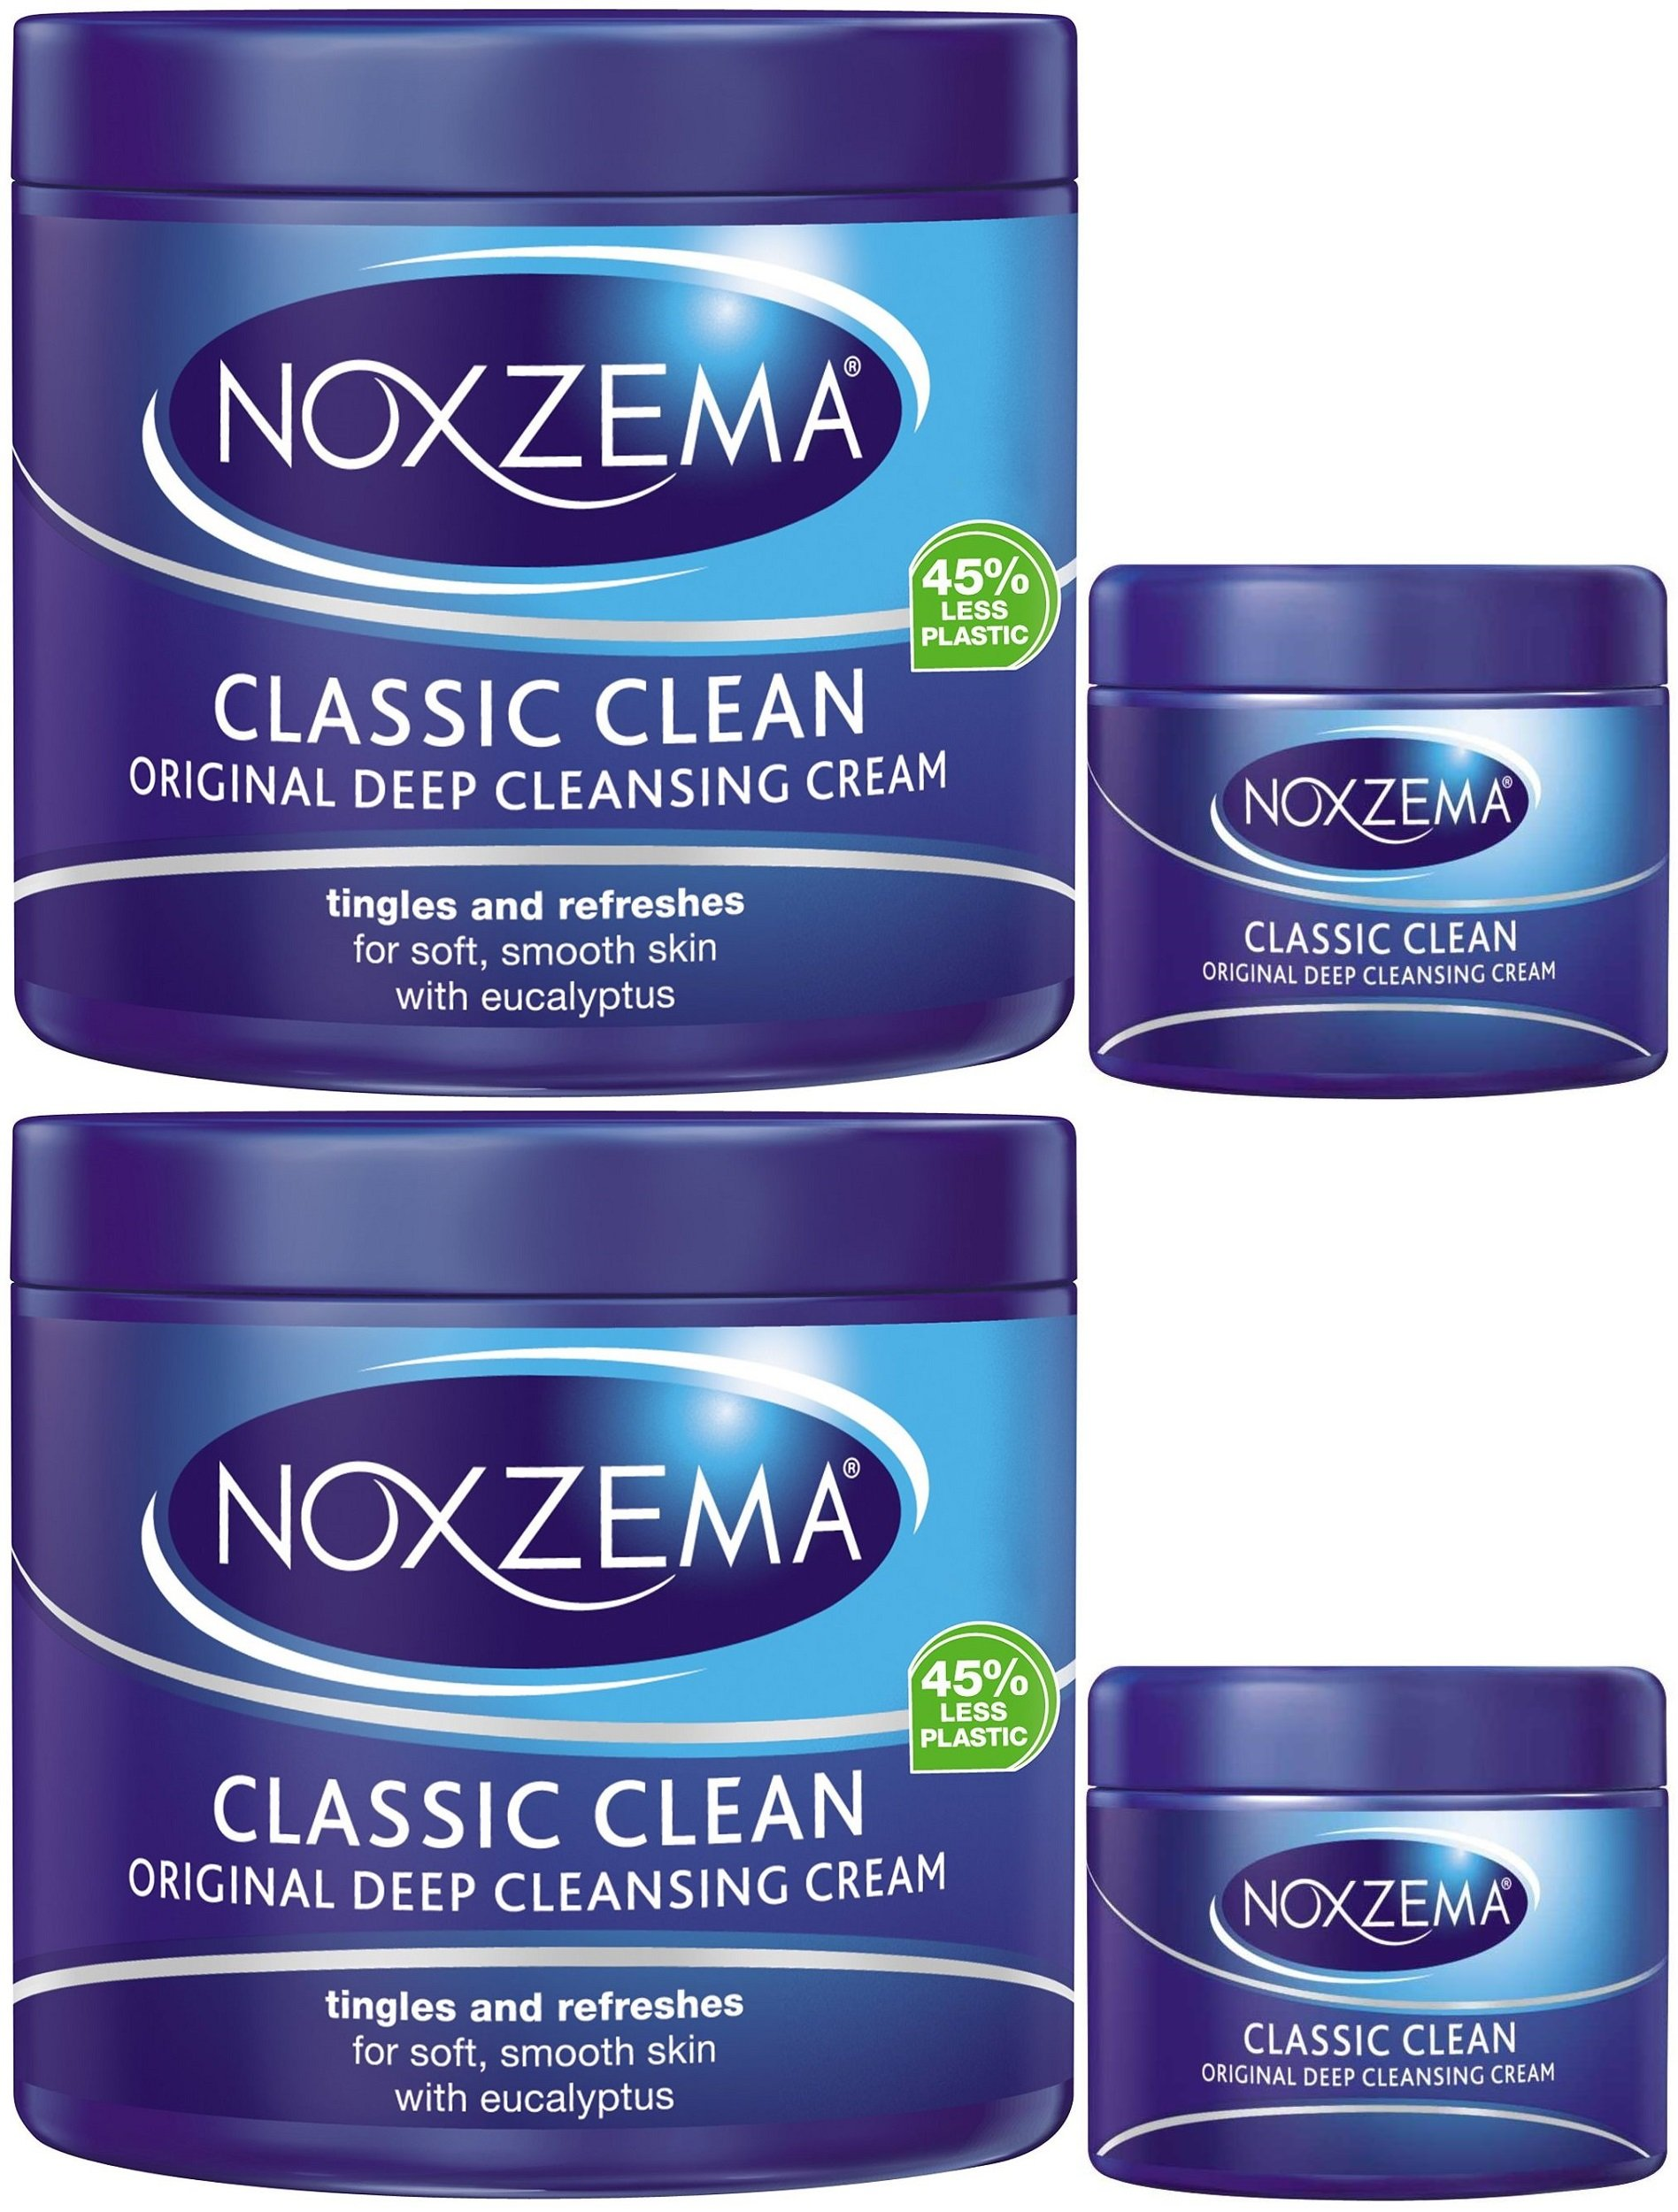 how to use noxzema classic clean